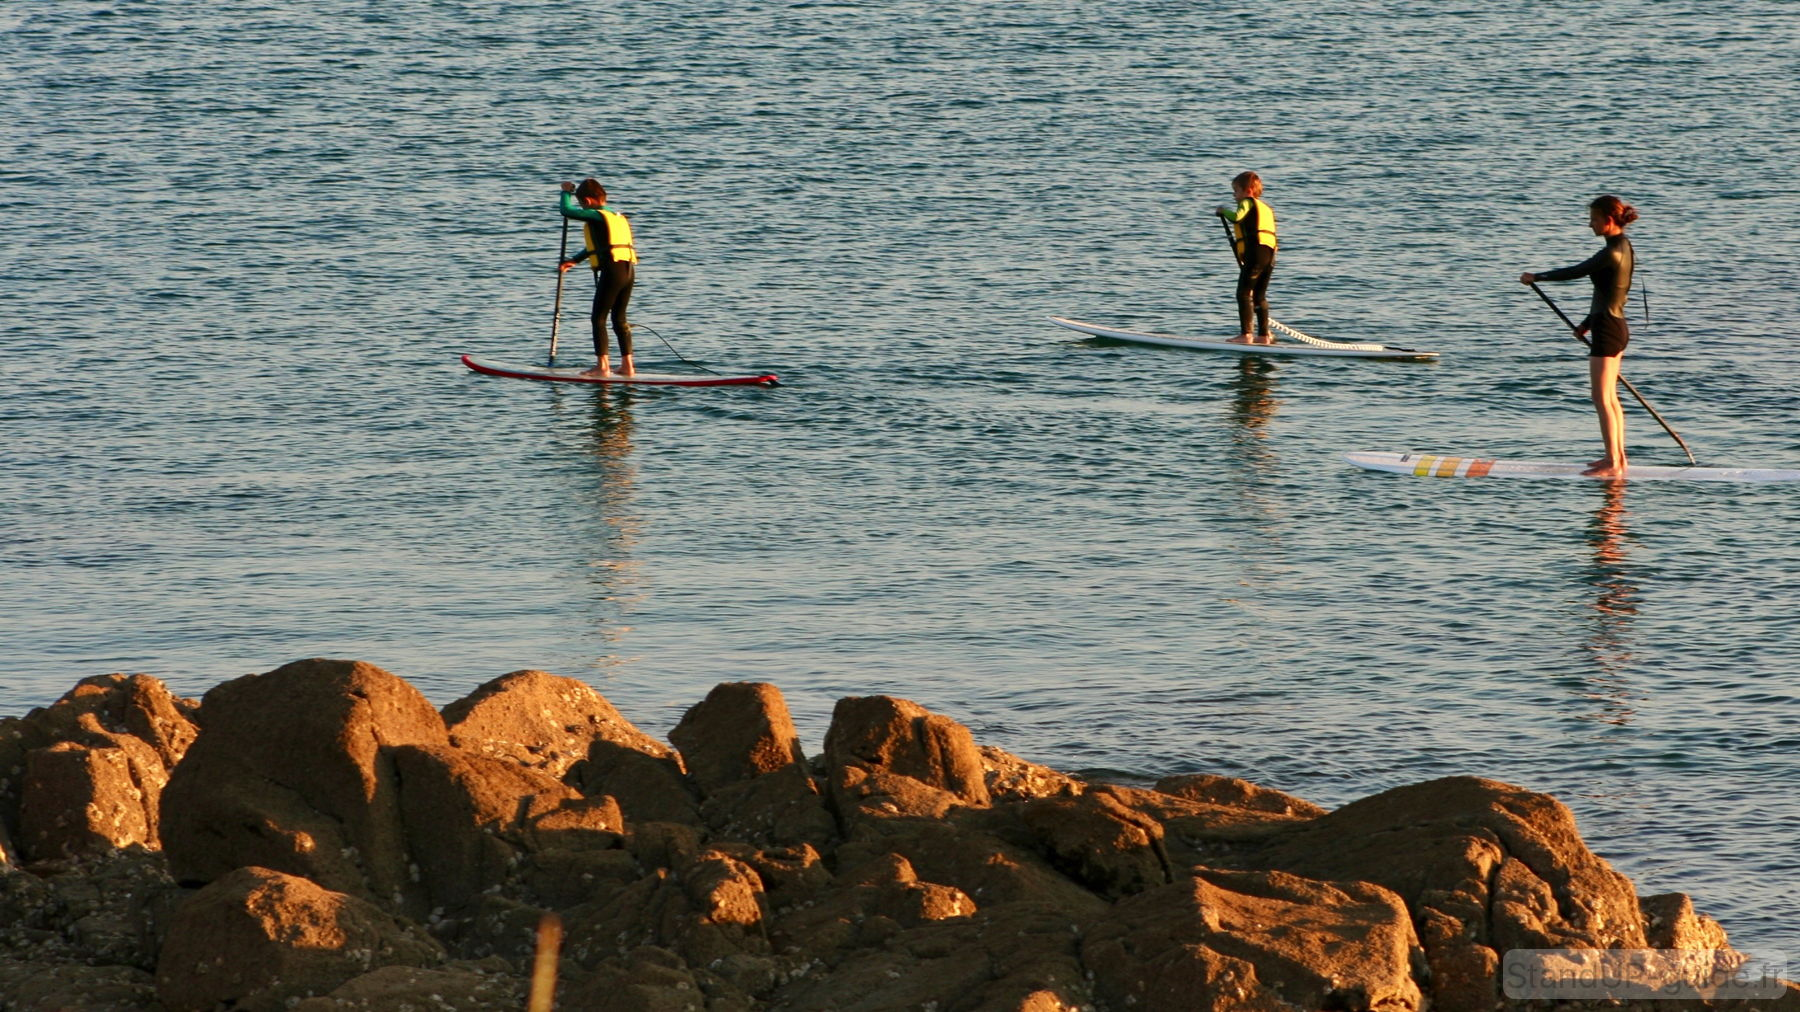 Qui veut faire du stand up paddle